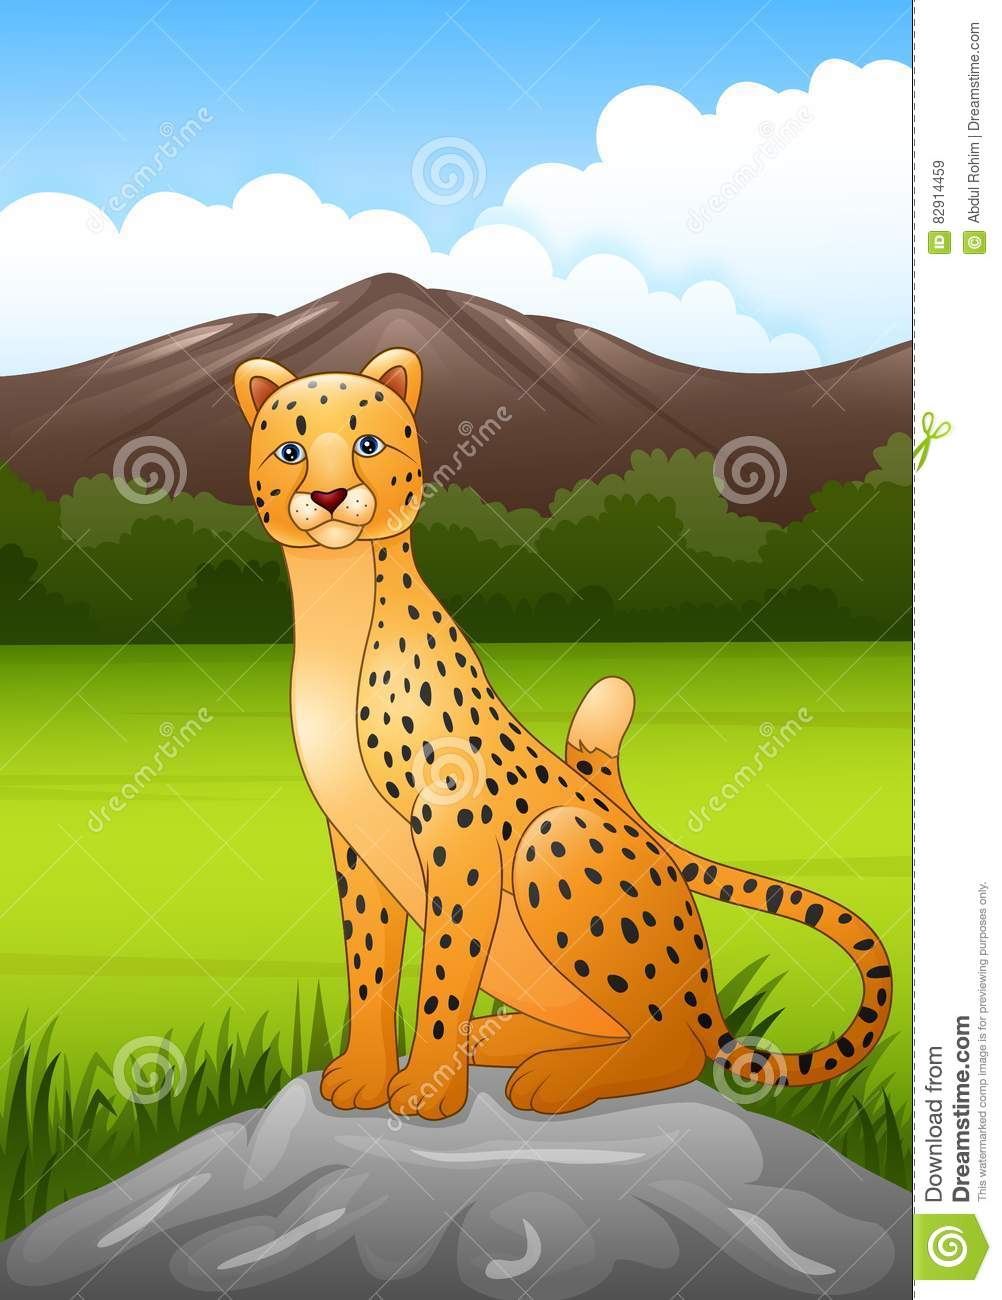 Cartoon cheetah sitting on a rock in African savanna